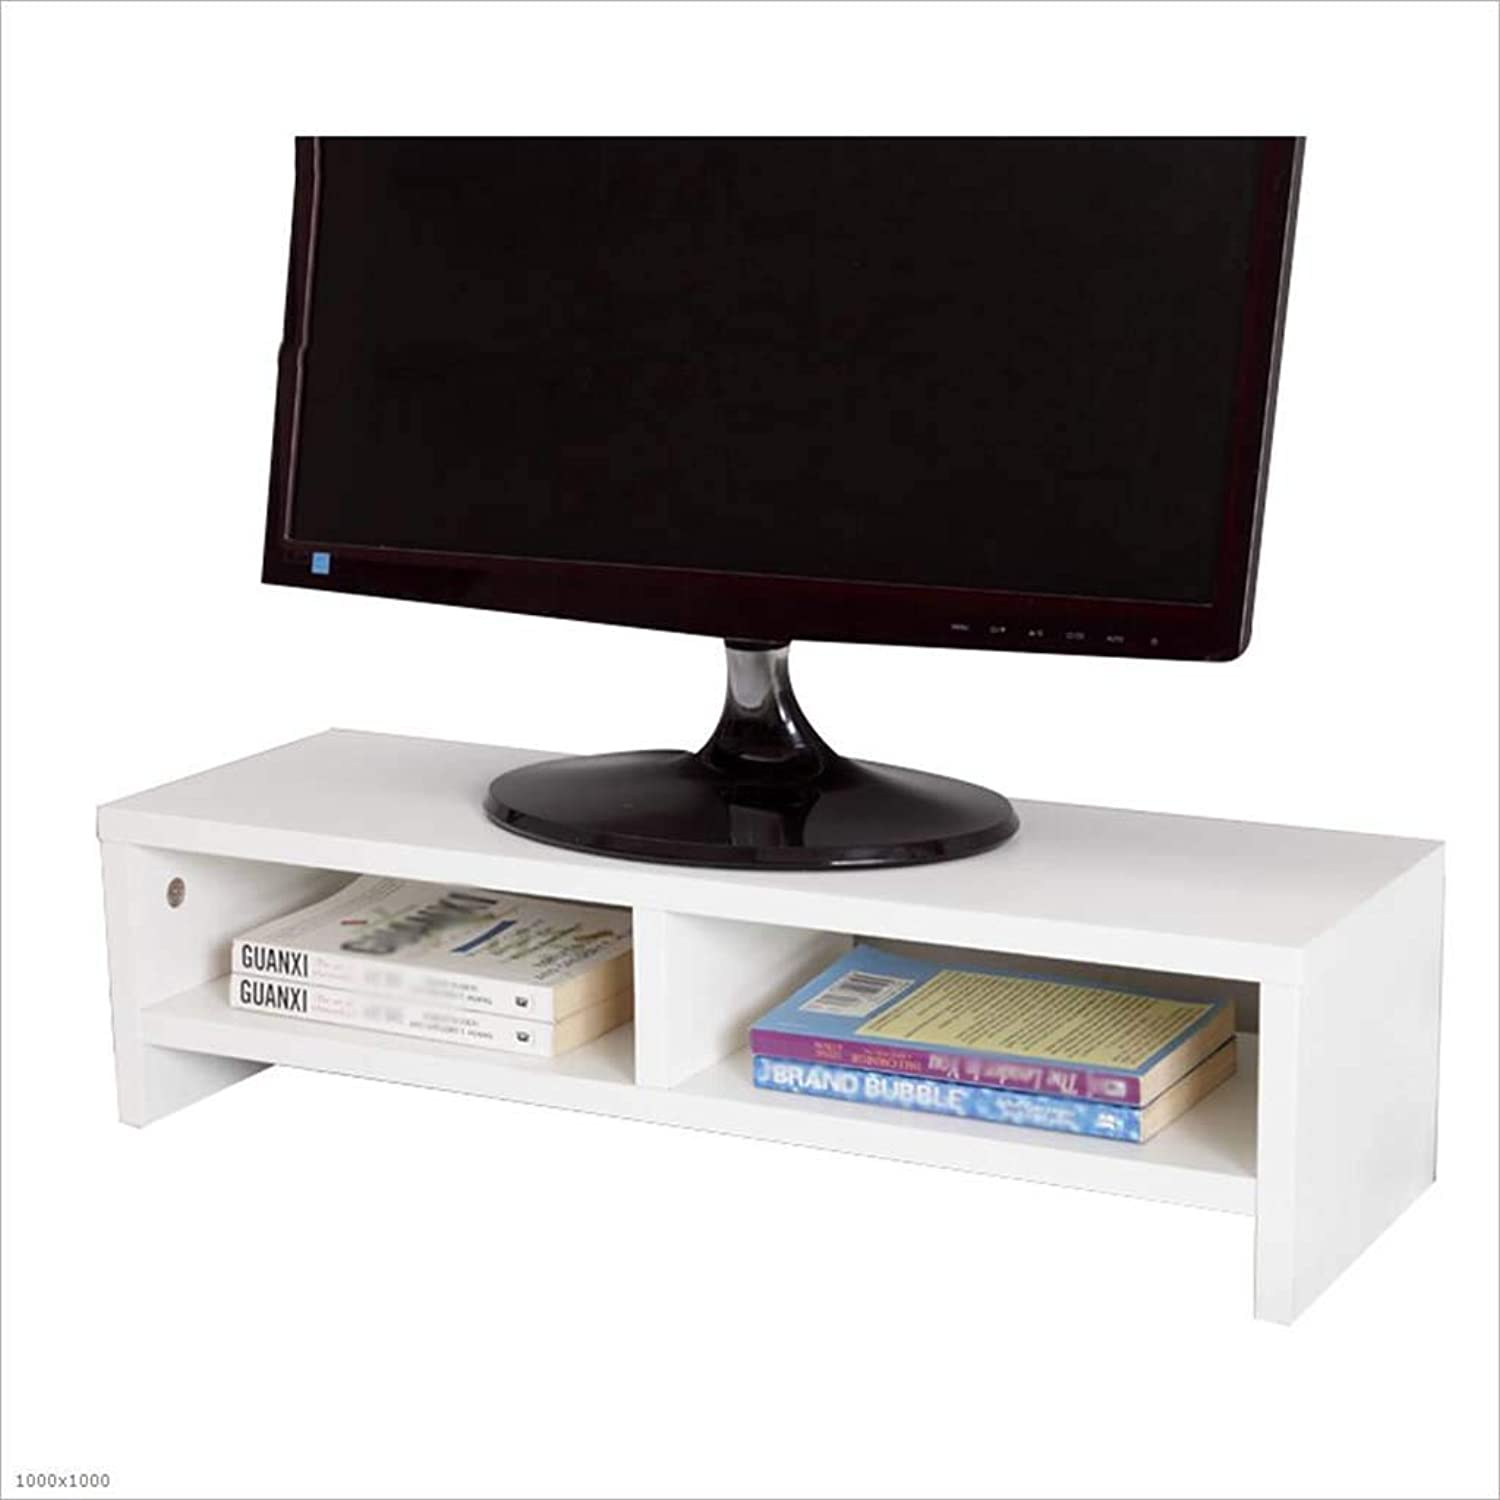 Computer Monitor Increased Shelf Bracket Bracket Keyboard Shelf Desktop Rack Storage Shelf,White,C